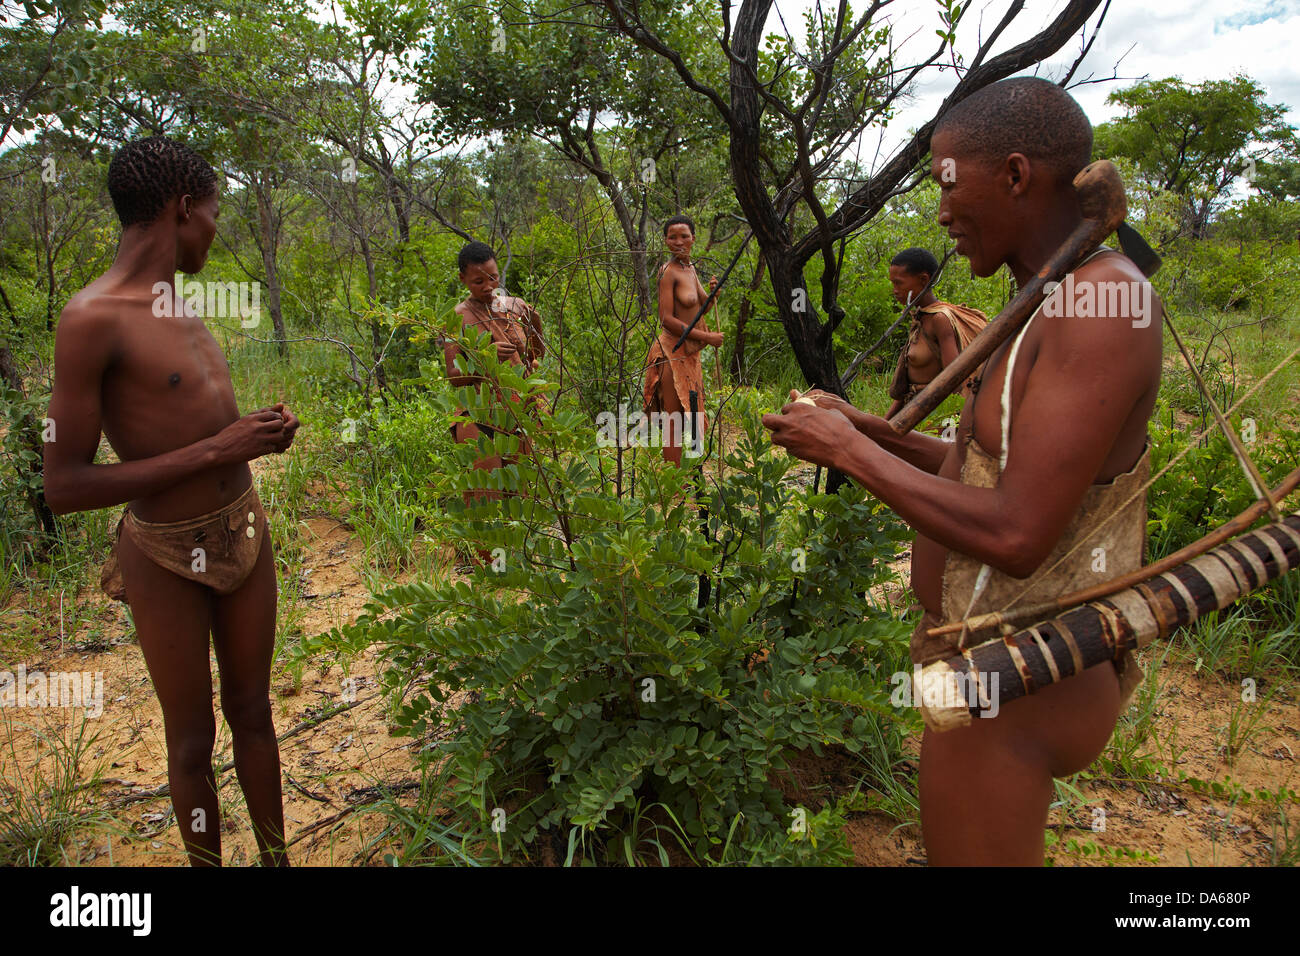 Hunter Gatherer Stock Photos Amp Hunter Gatherer Stock Images